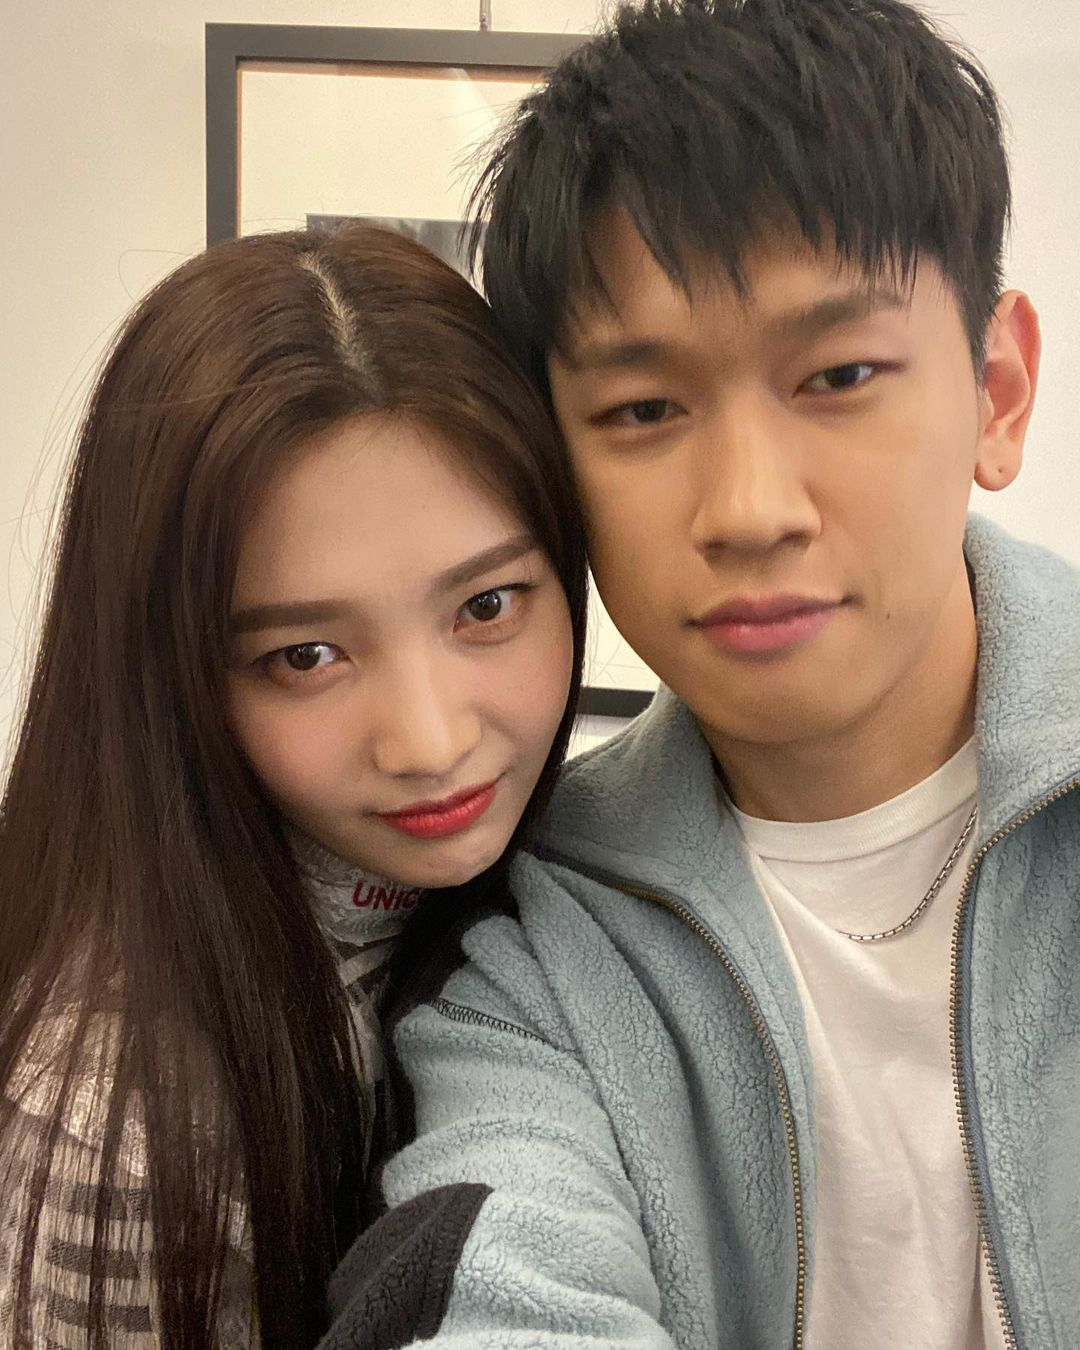 Joy and Crush confirmed to be dating - a selfie posted on joy's IG